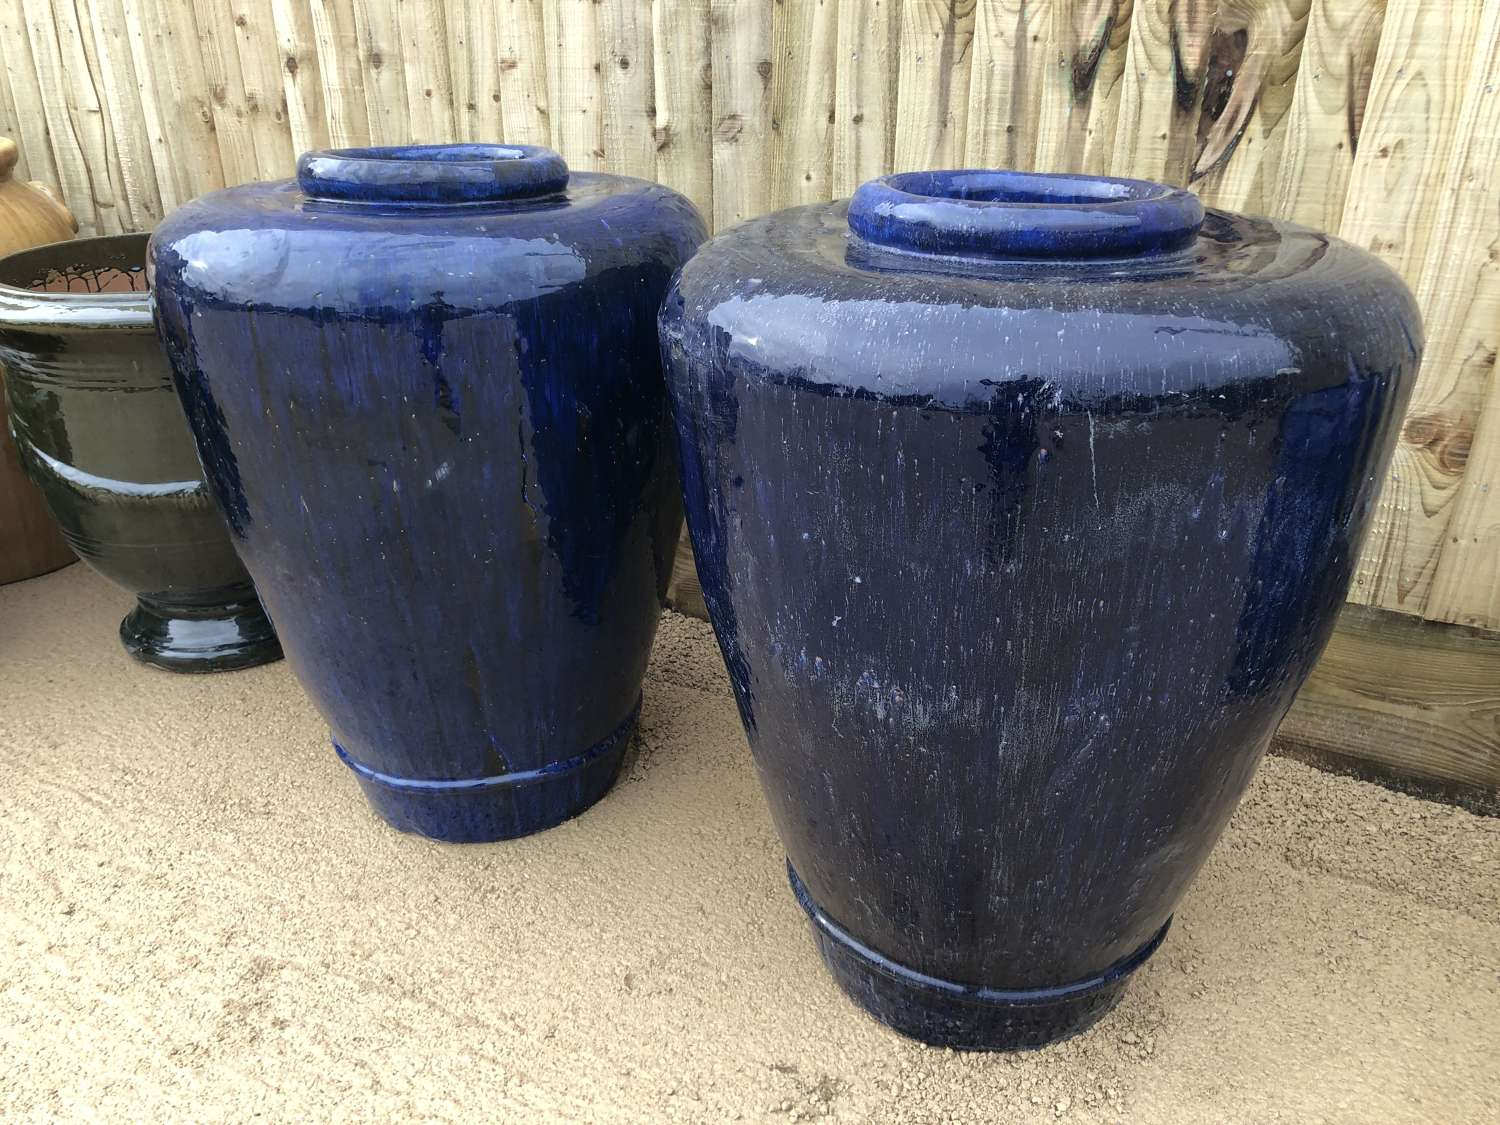 Large Glazed Tapered Pot - Glazed Olive Jars - Ali ba ba pots